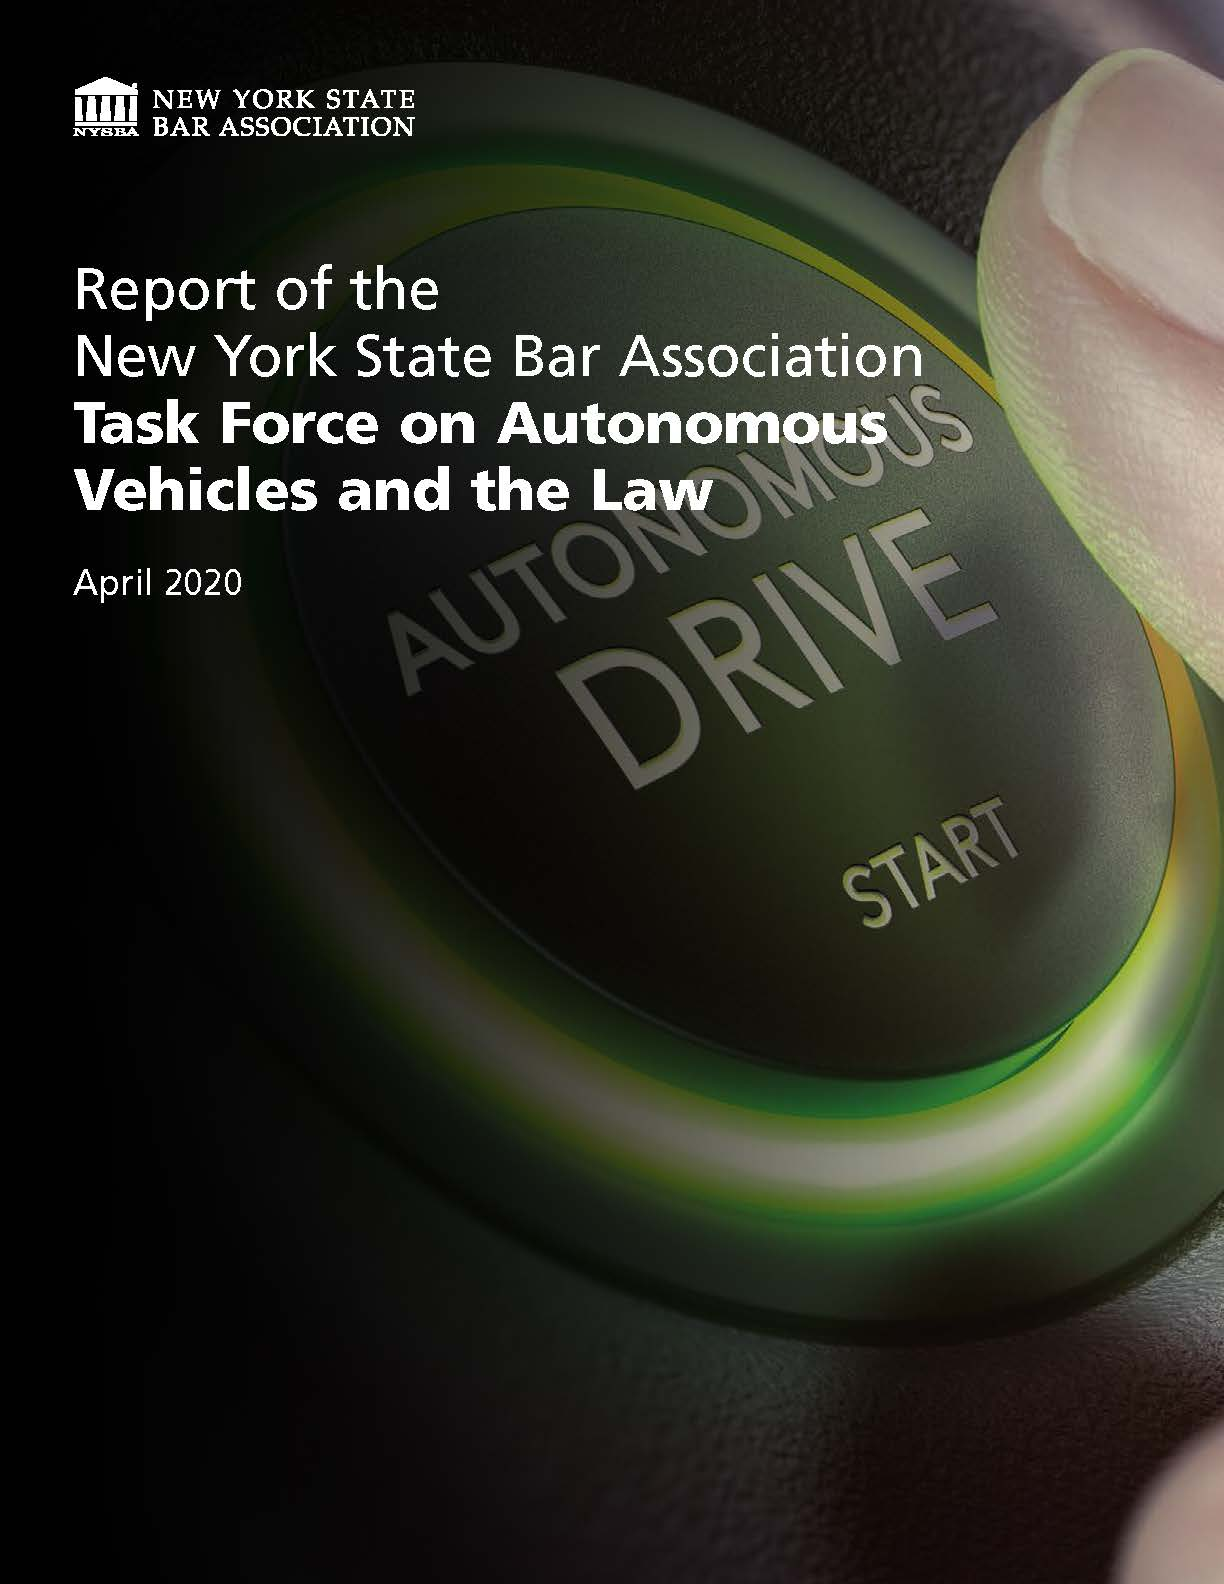 Report-Task-Force-on-Autonomous-Vehicles-and-the-Law-April-2020_Page_01